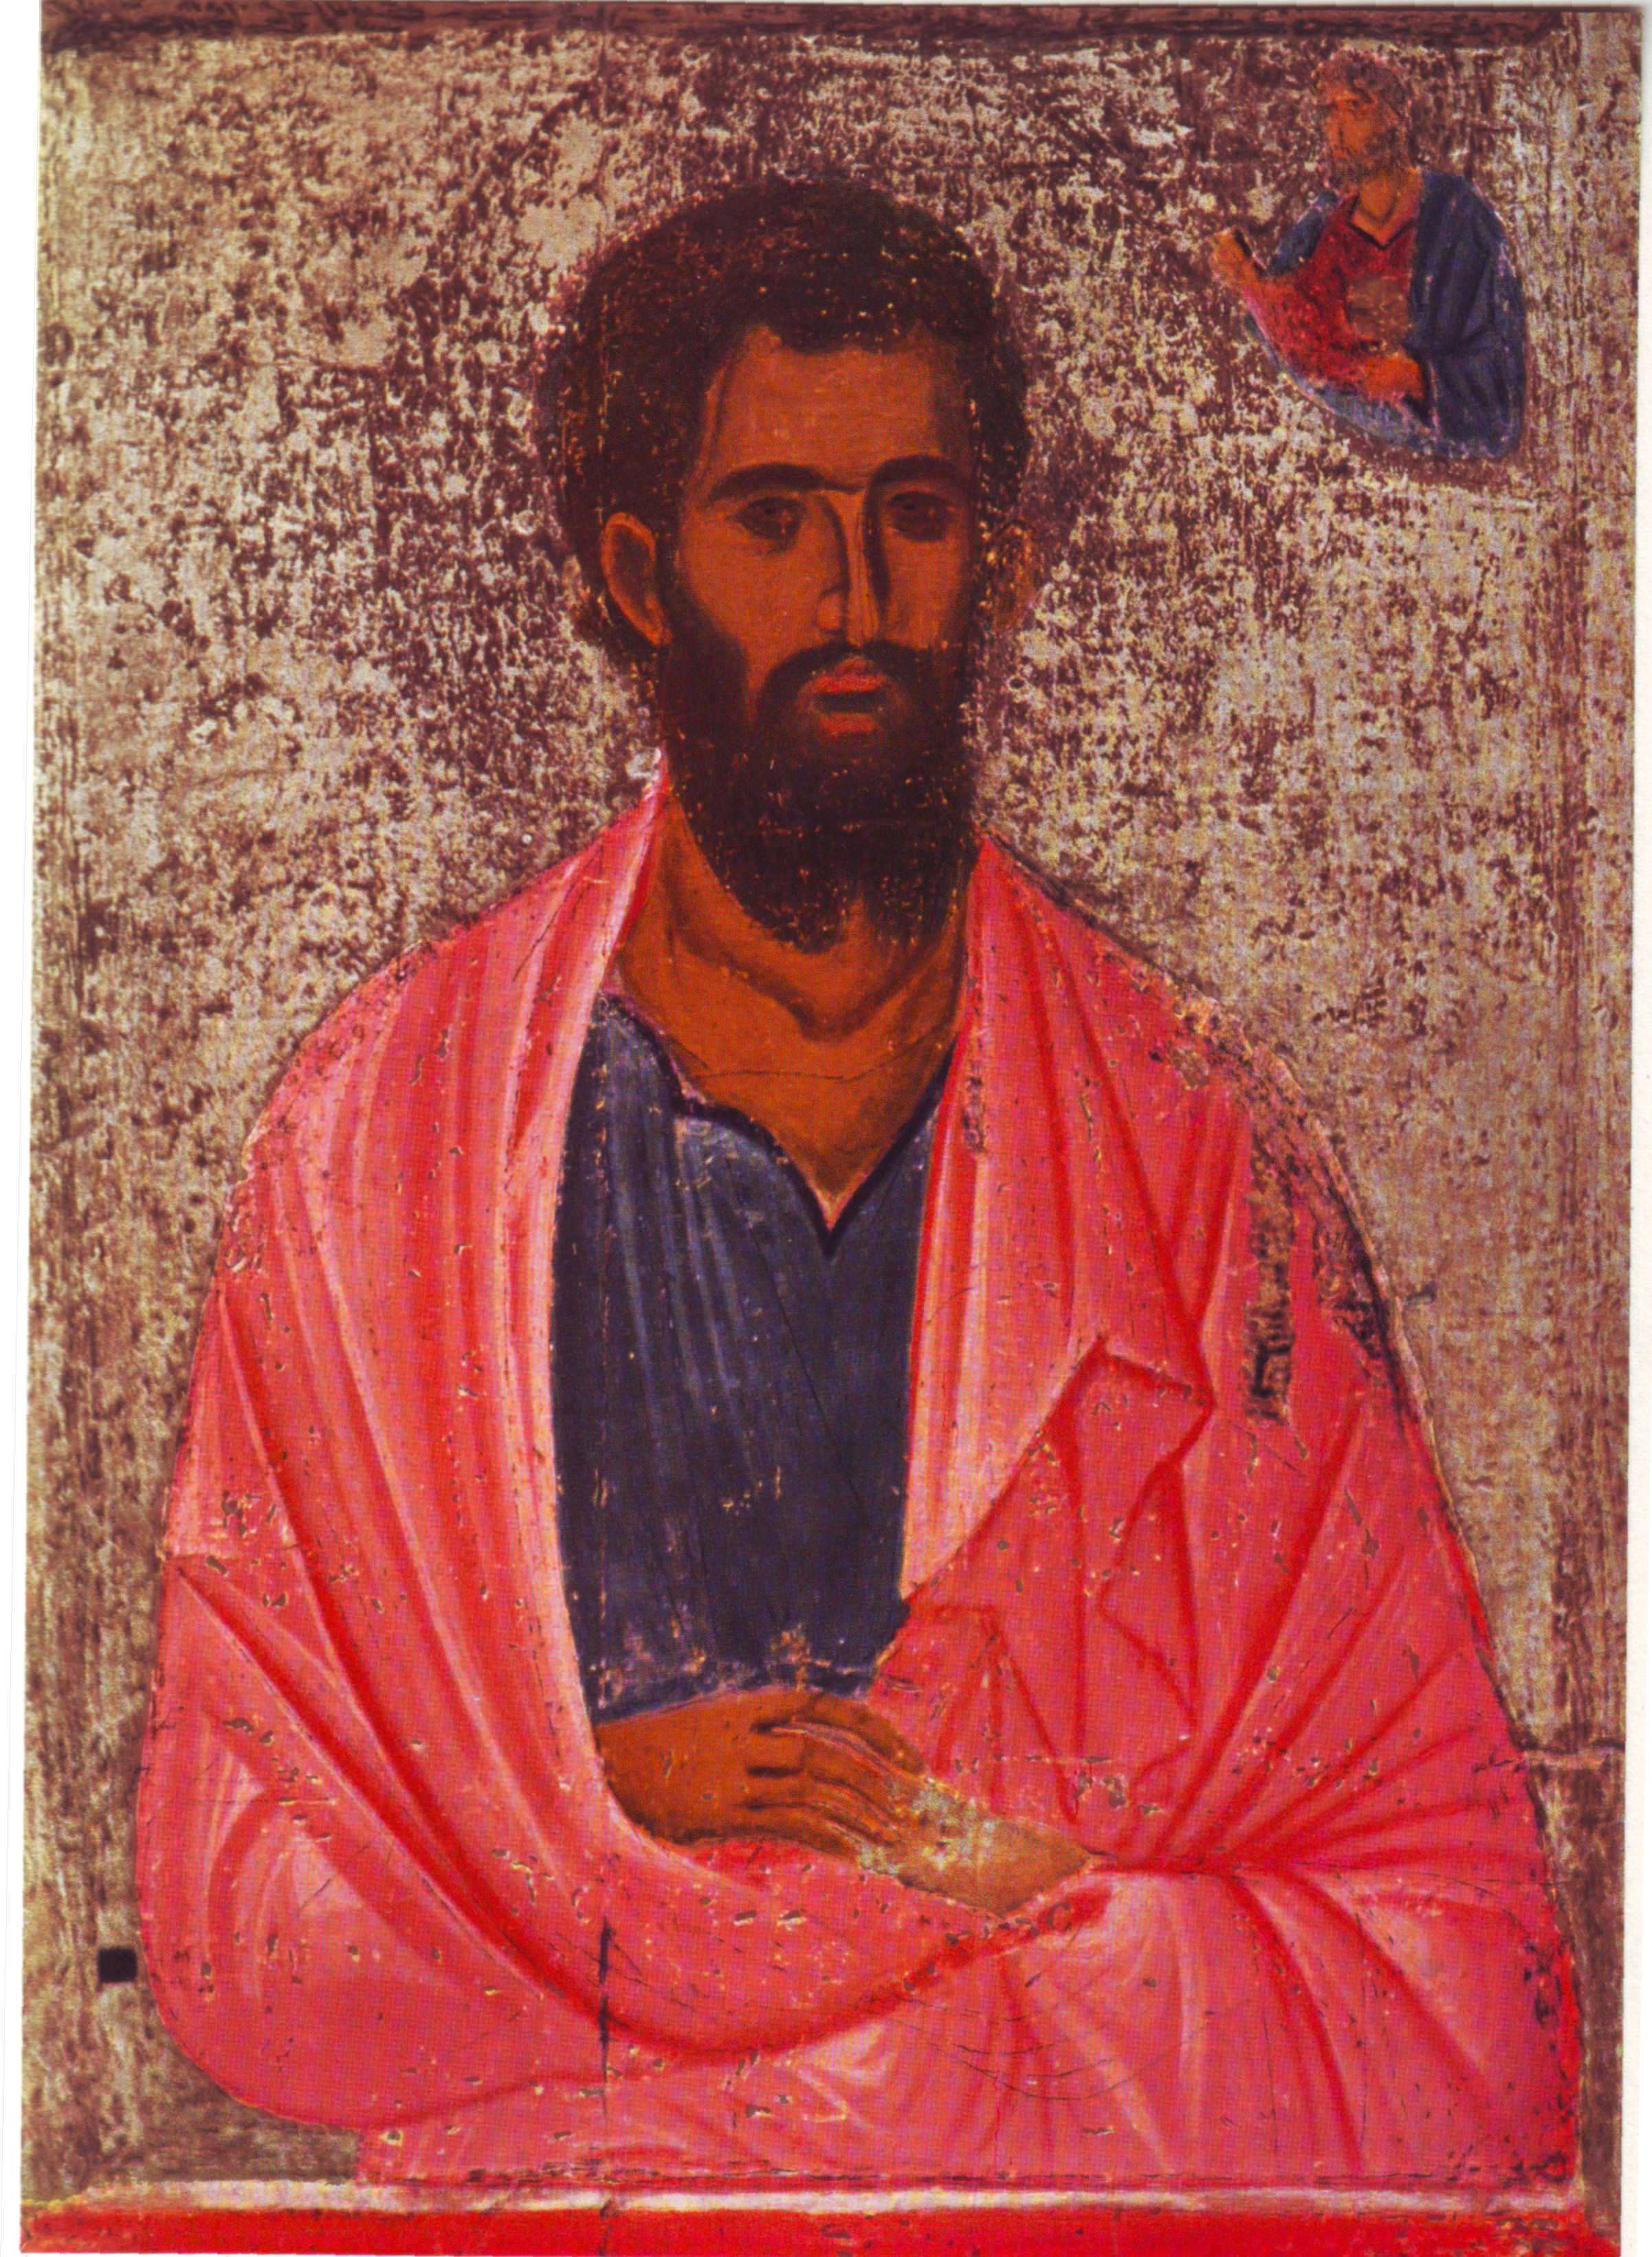 Jokūbas vyresnysis, apaštalas. Icon of saint Jacob. Pathmos, monastery of st. John the Evangelist. Святой Иаков. Монастырь св. Иоанна Богослова, Патмос, 12 век